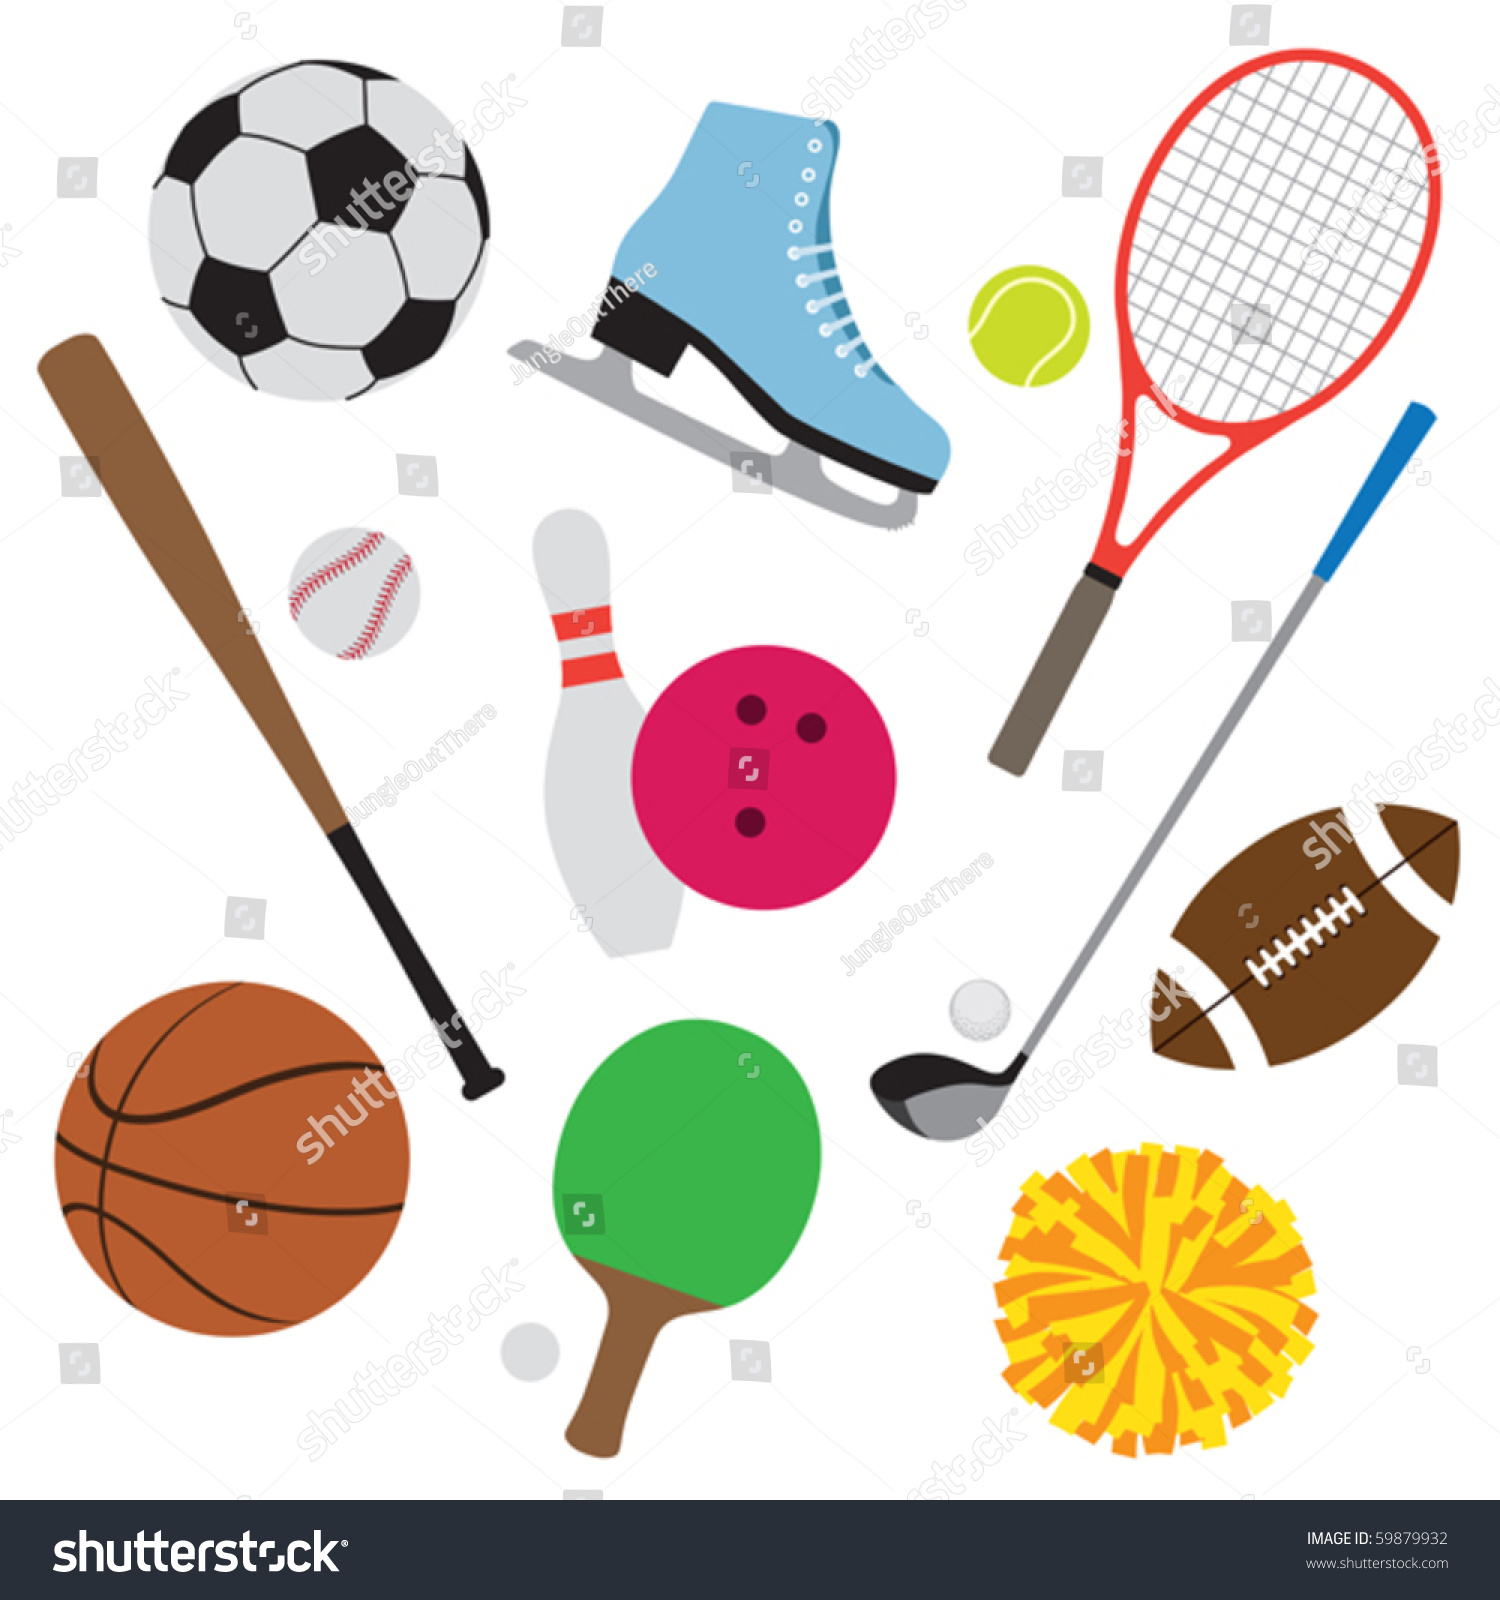 Sporting Equipment Clipart.